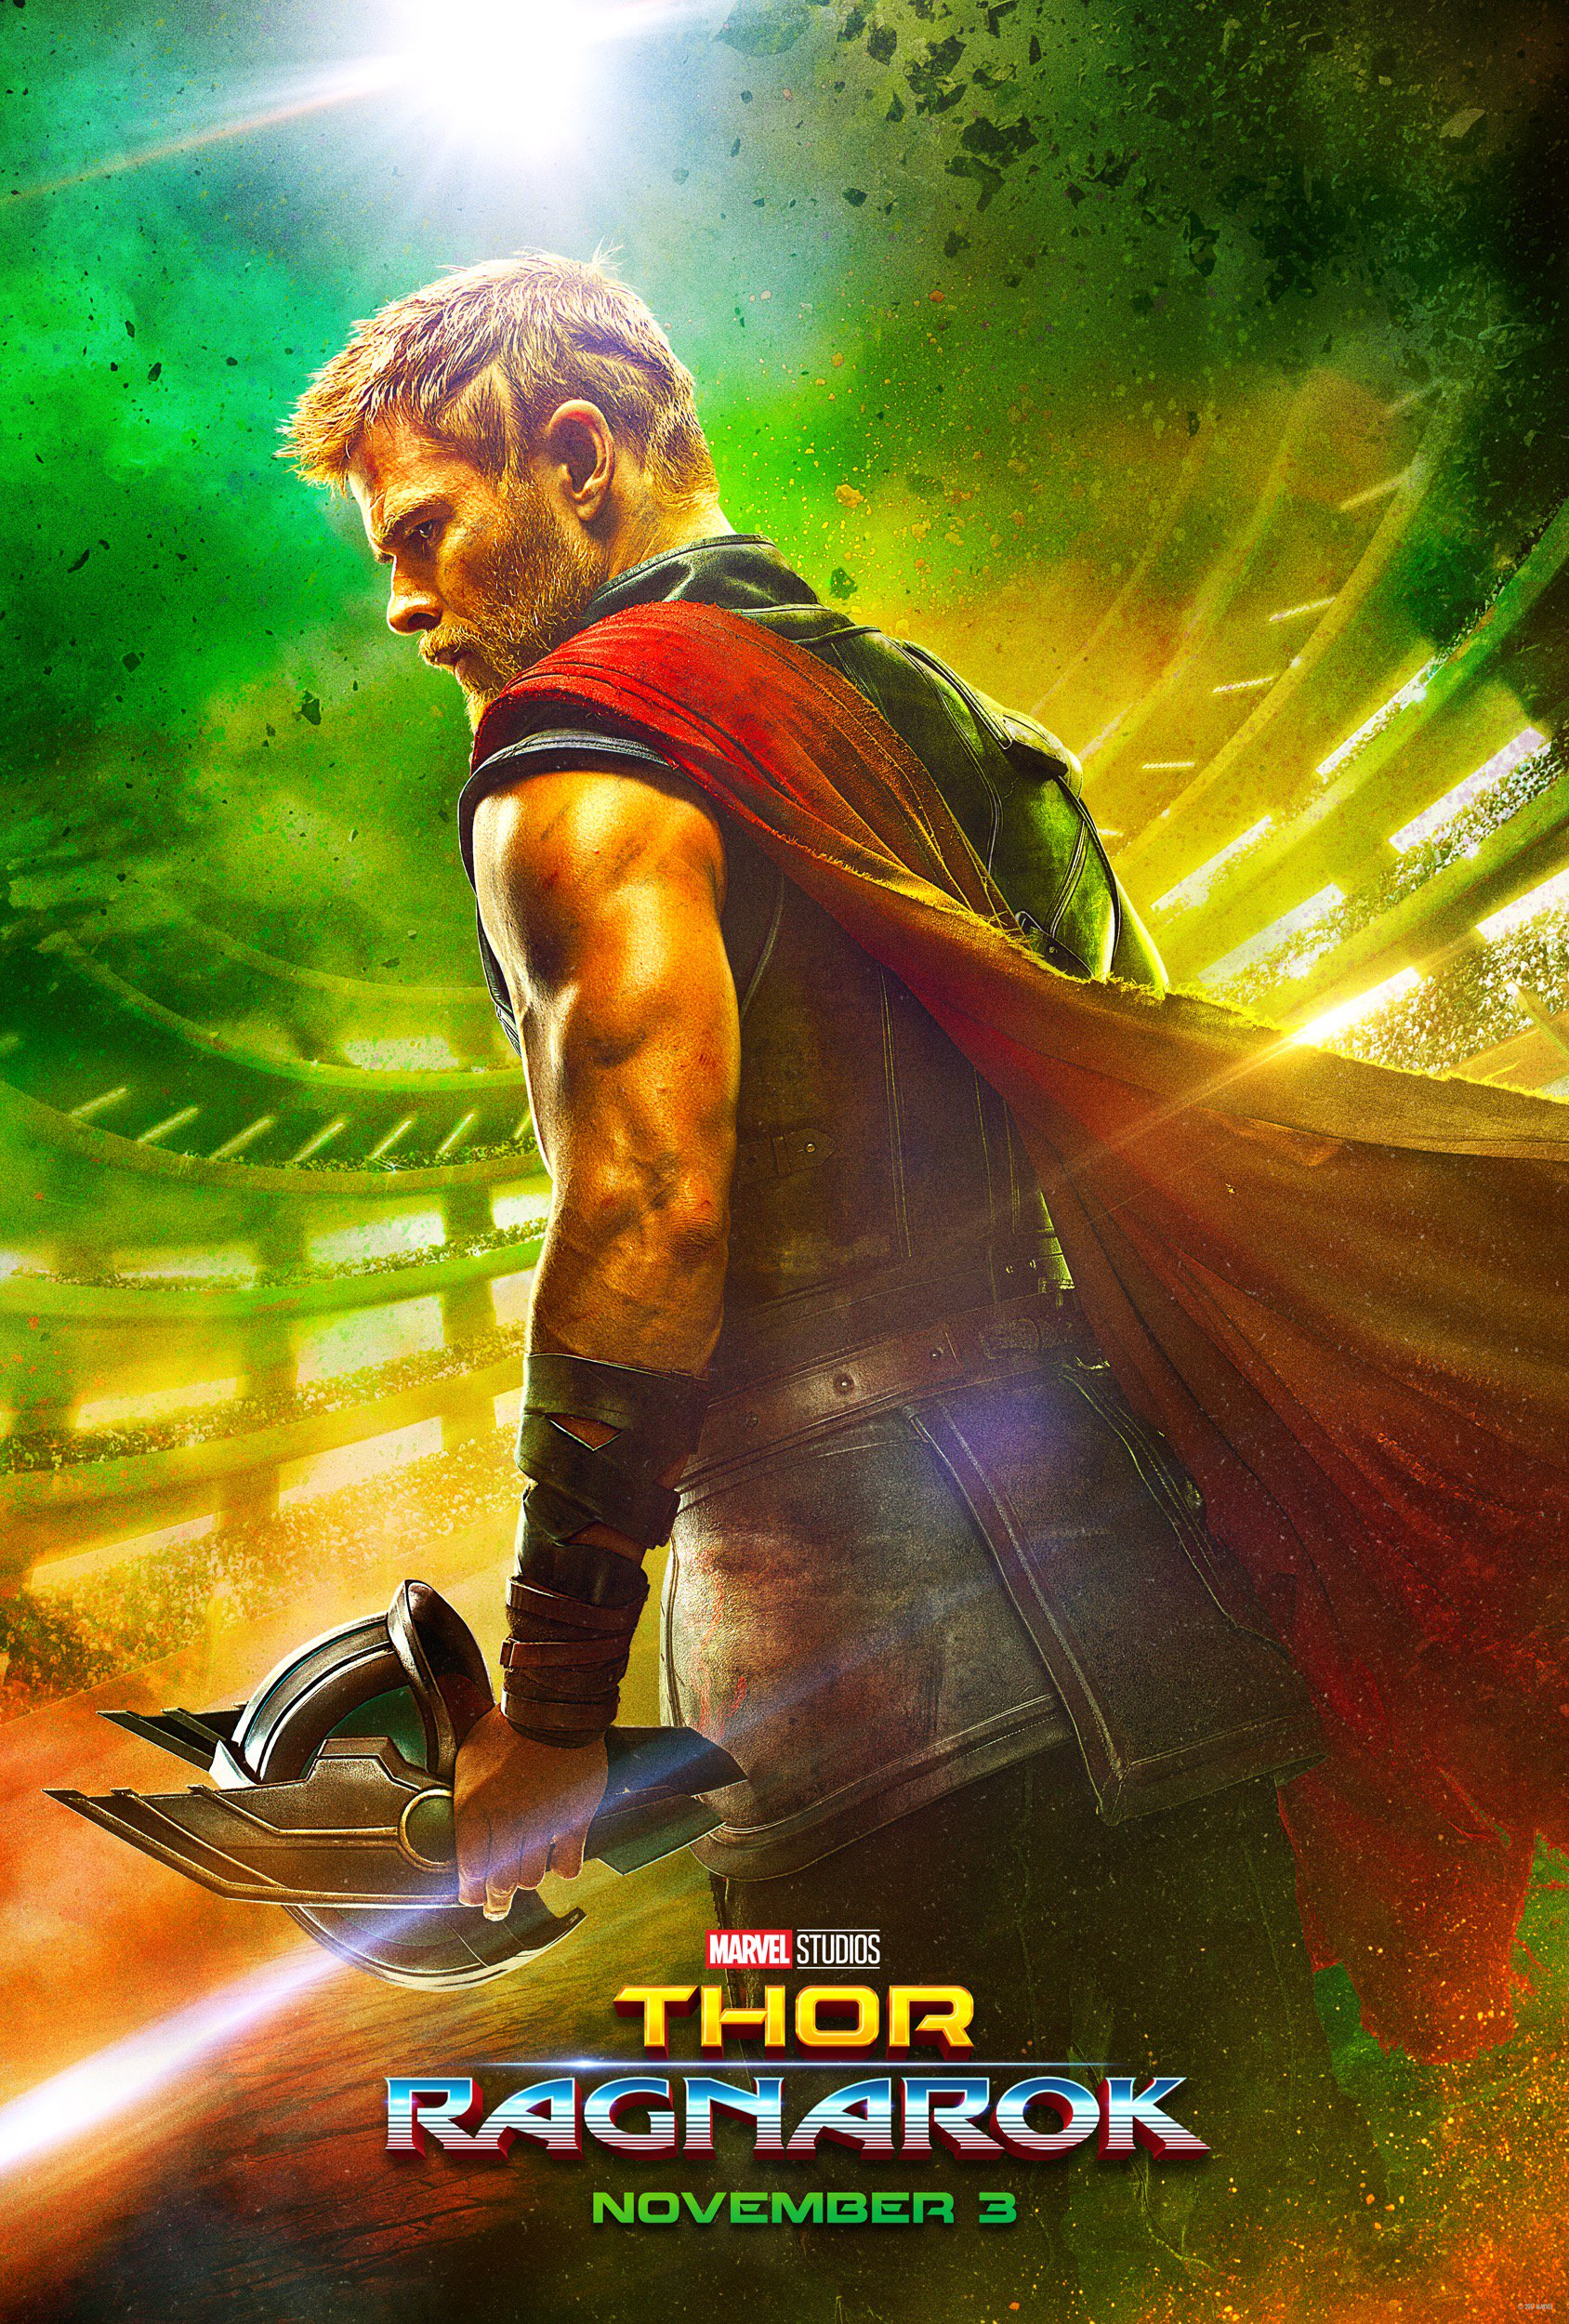 It's the Odinson vs. Hulk in New THOR: RAGNAROK Teaser Trailer!